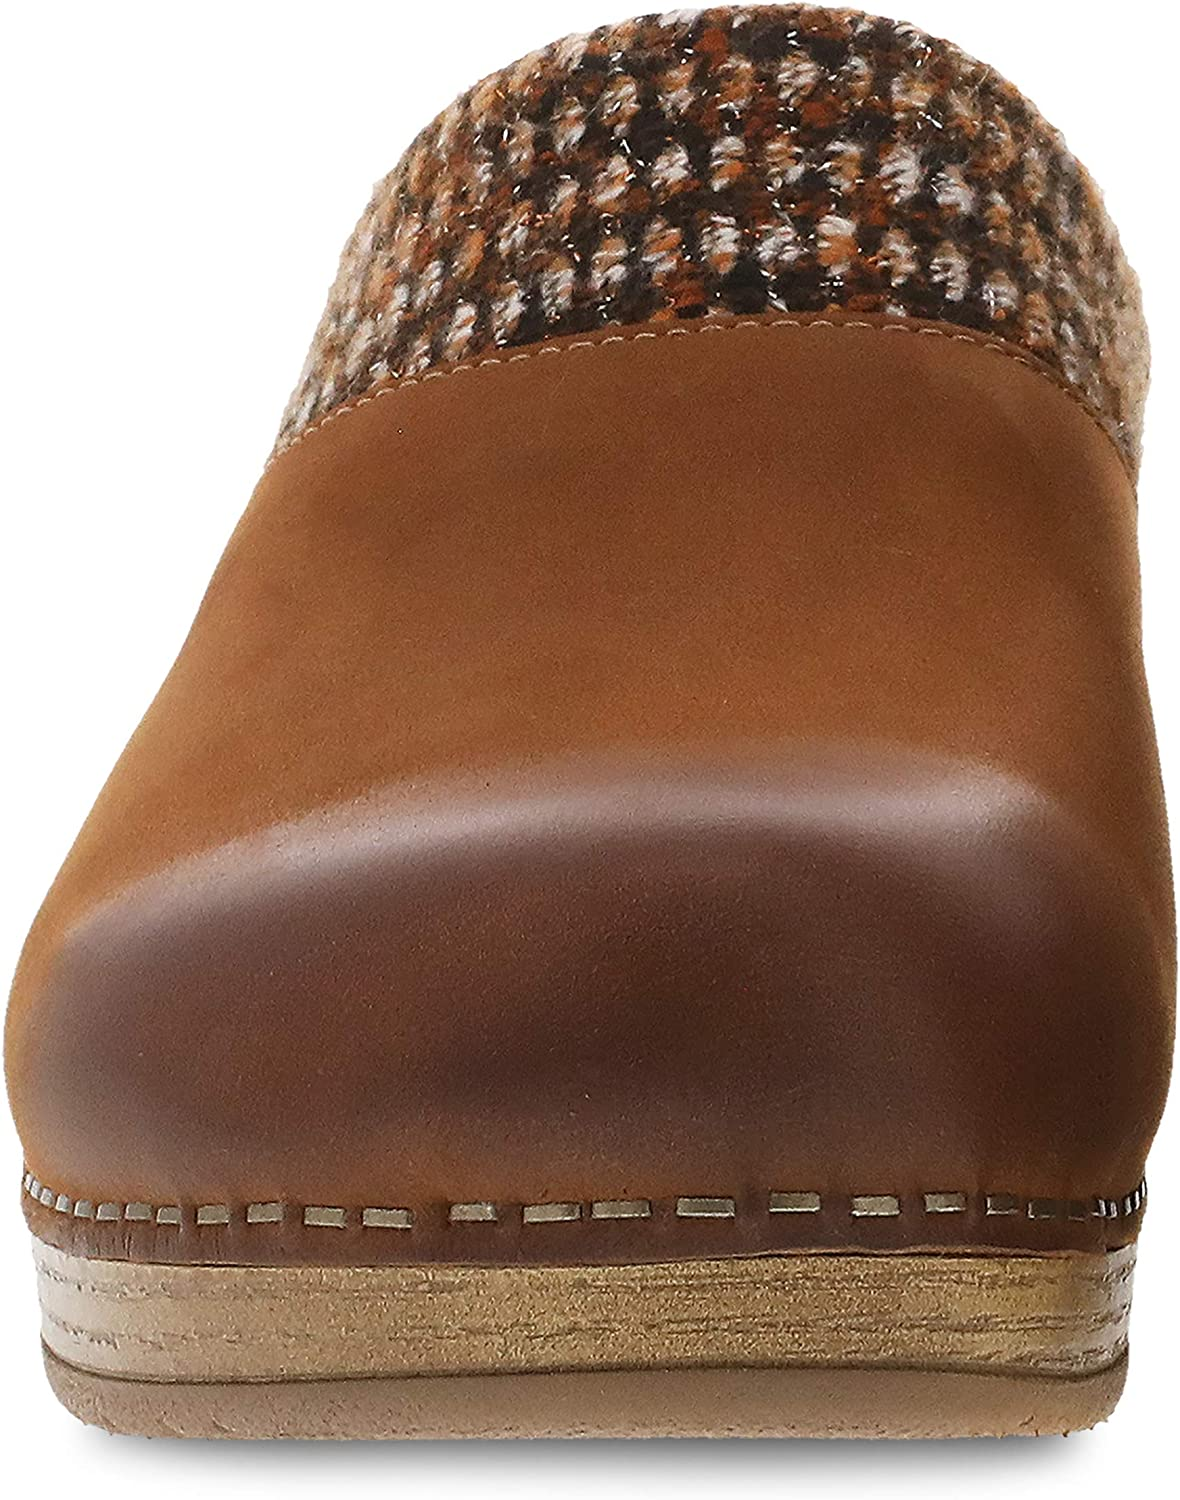 Dansko Womens BEV Outdoor Slippers Comfort Slip on